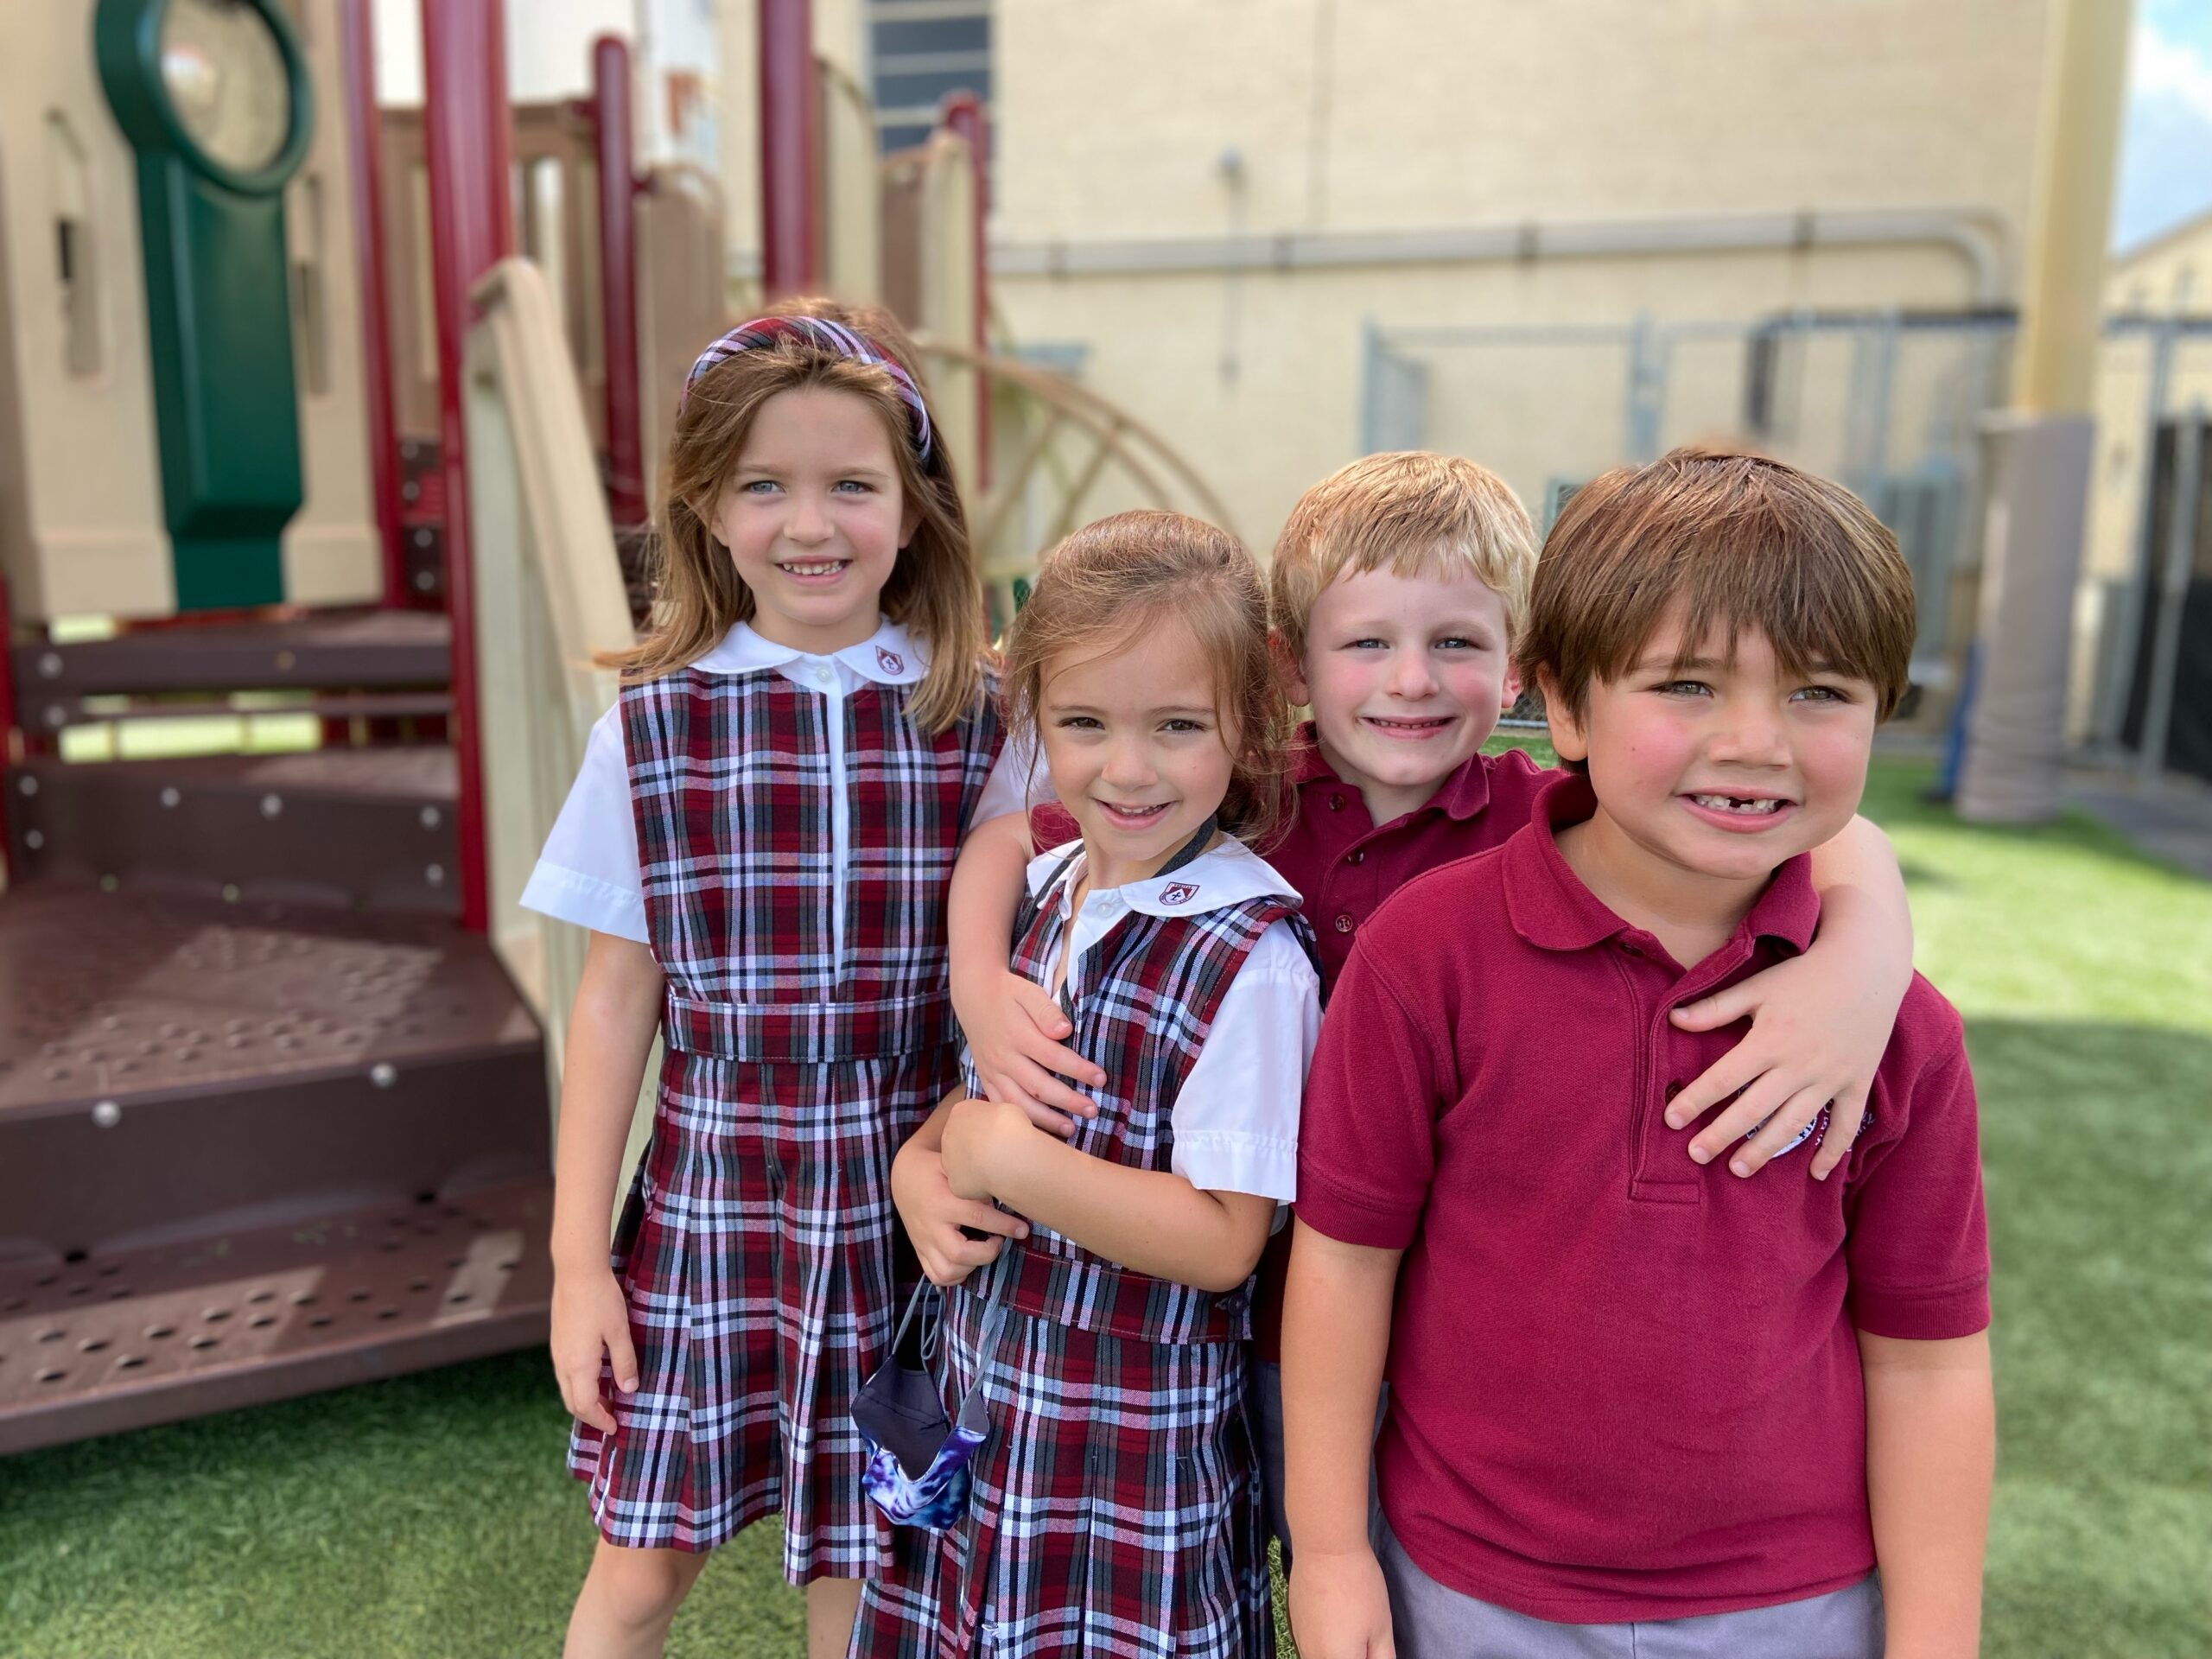 lower_school_boys_and_girls_outside